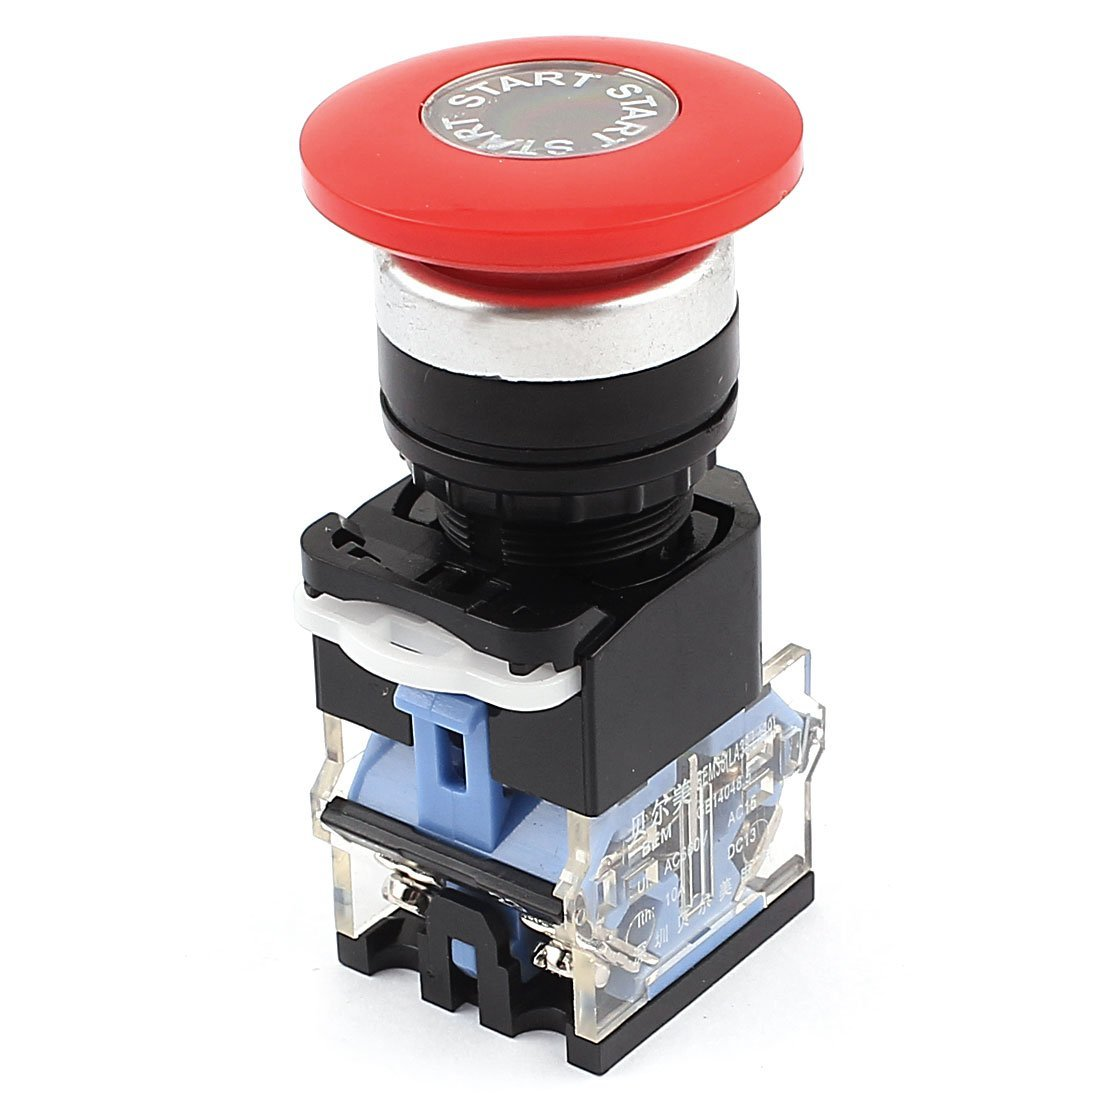 AC 660V 10A DPST Red Rotary darr/êt durgence verrouillable Push Button Switch